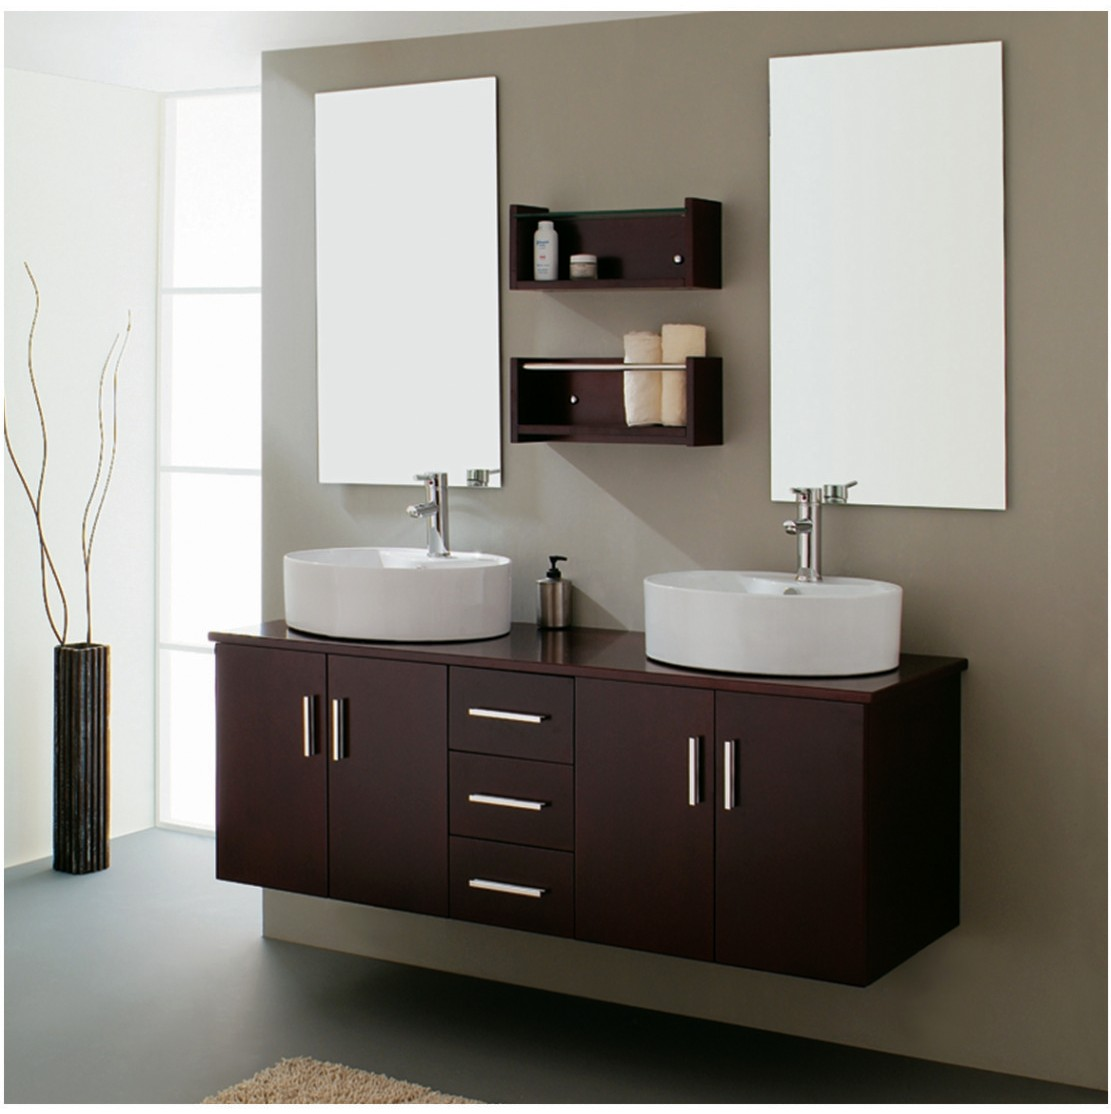 Modern bathroom double sink home decorating ideas for Contemporary bathroom design